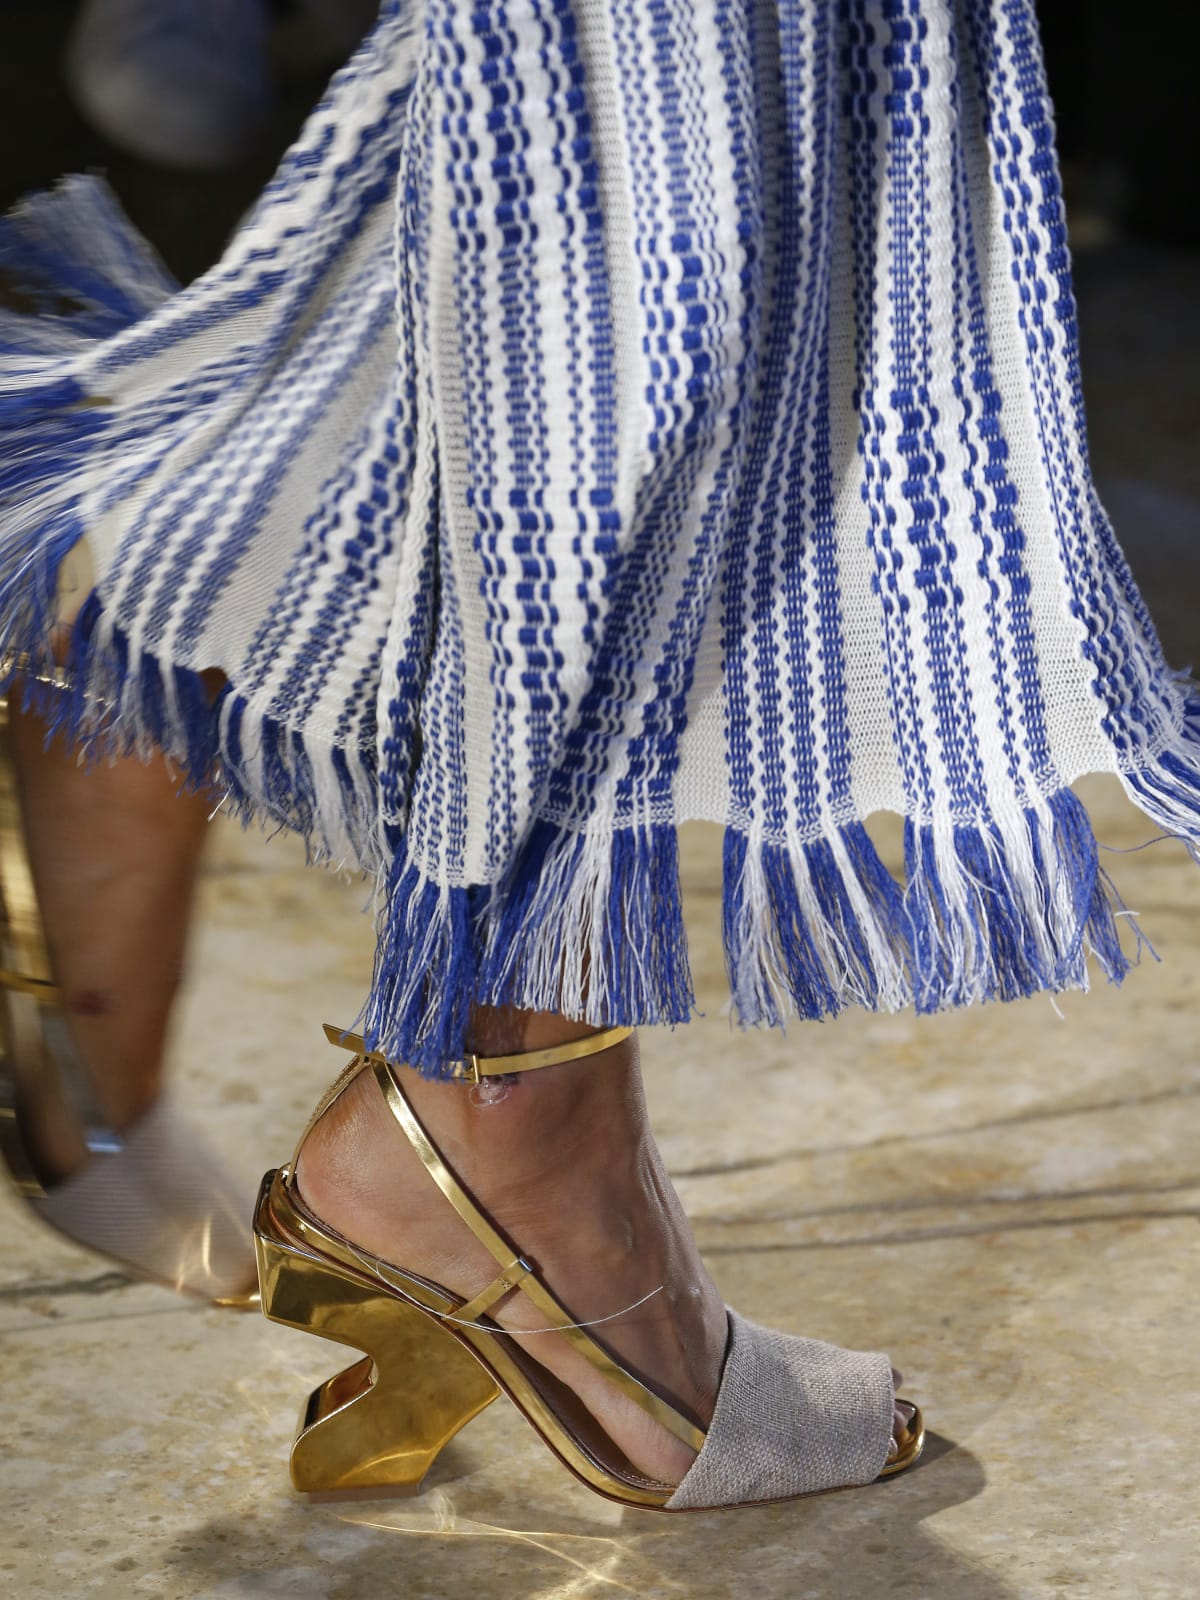 Tory Burch SS 2016 shoes